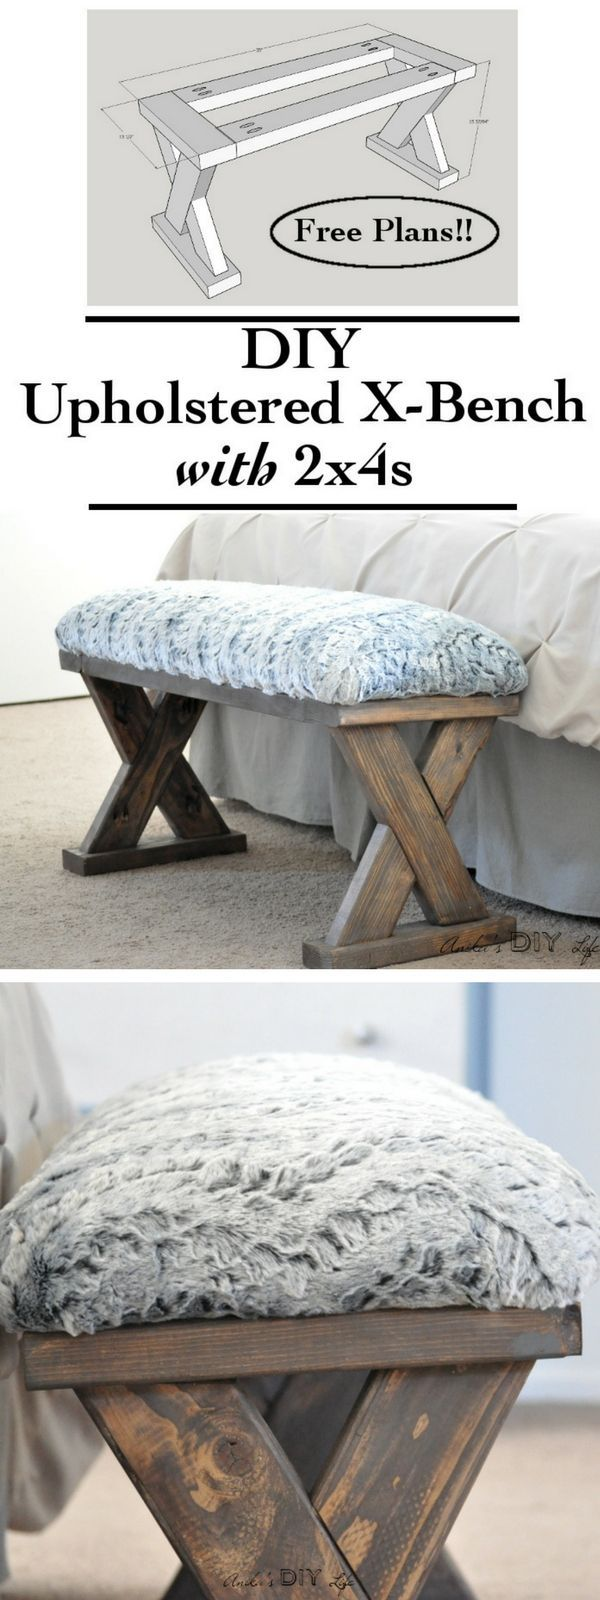 Check out the tutorial on how to make a DIY upholstered bench @istandarddesign